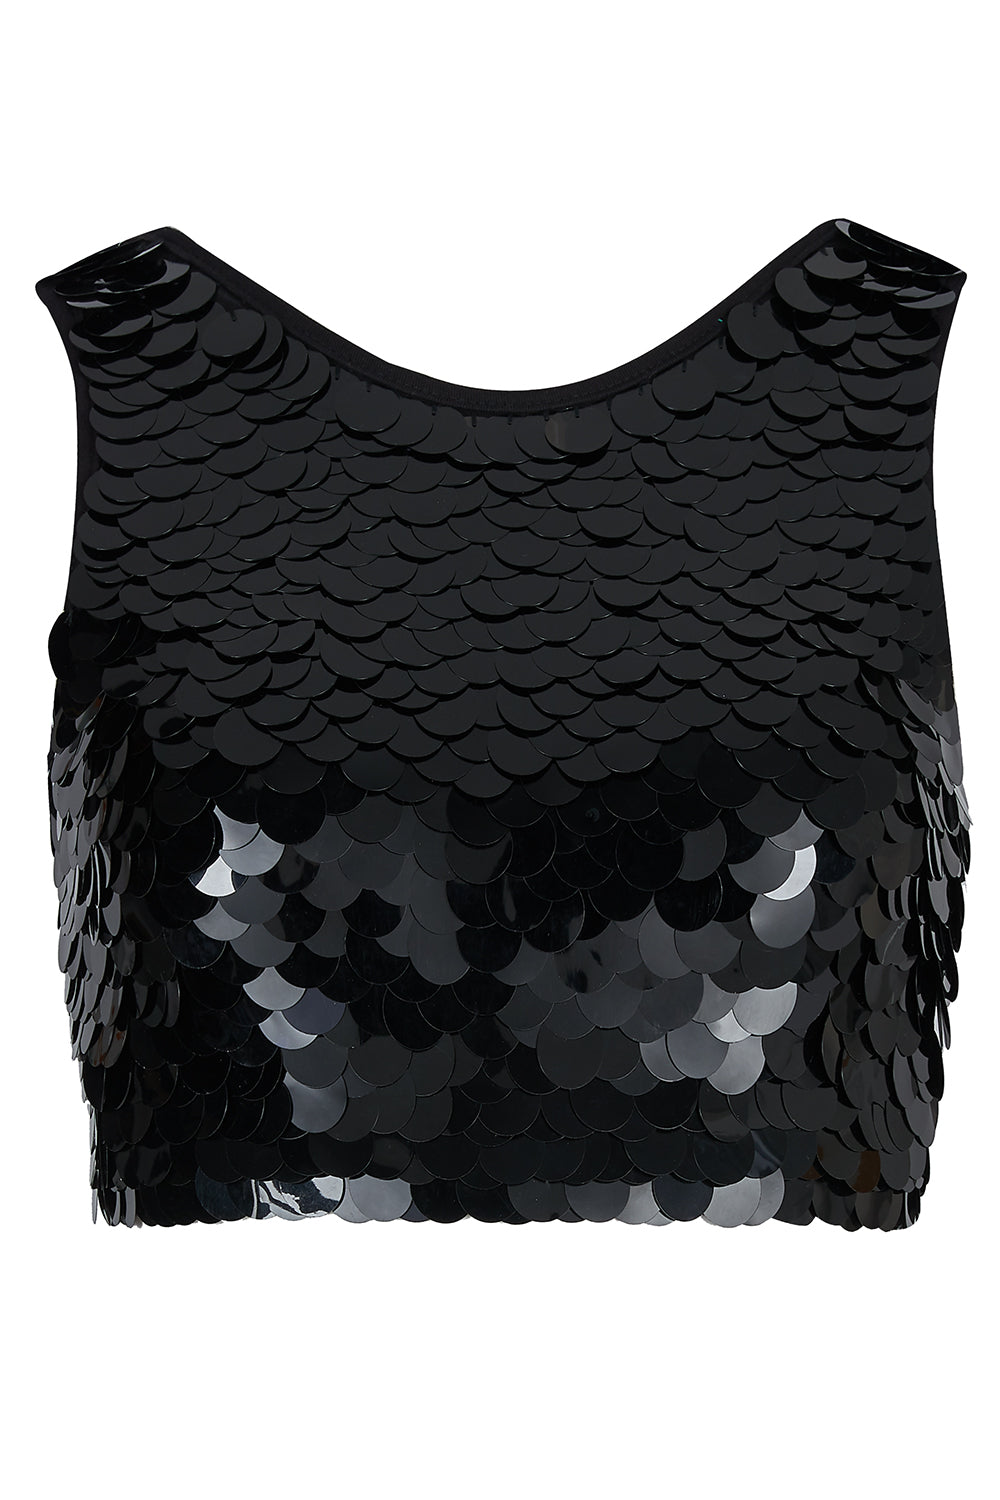 TWINKS SEQUIN CROP TOP - BLACK